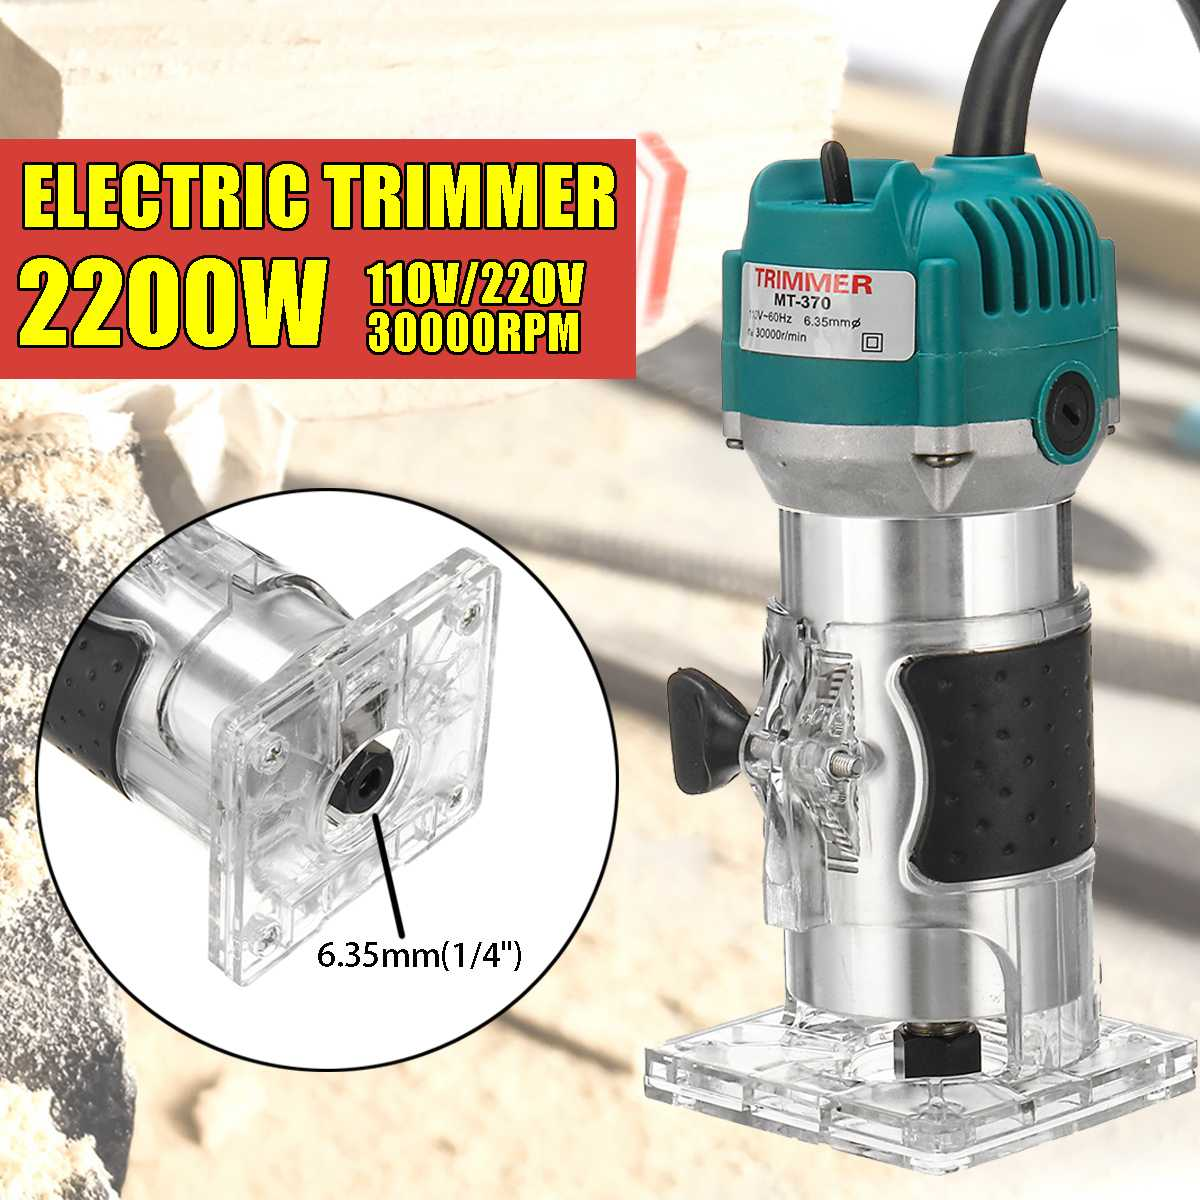 6.35mm 220V 2200W Electric Hand Trimmer Wood Laminate Palms Router Joiners Router Copper Motor Carving Machine DIY Tools